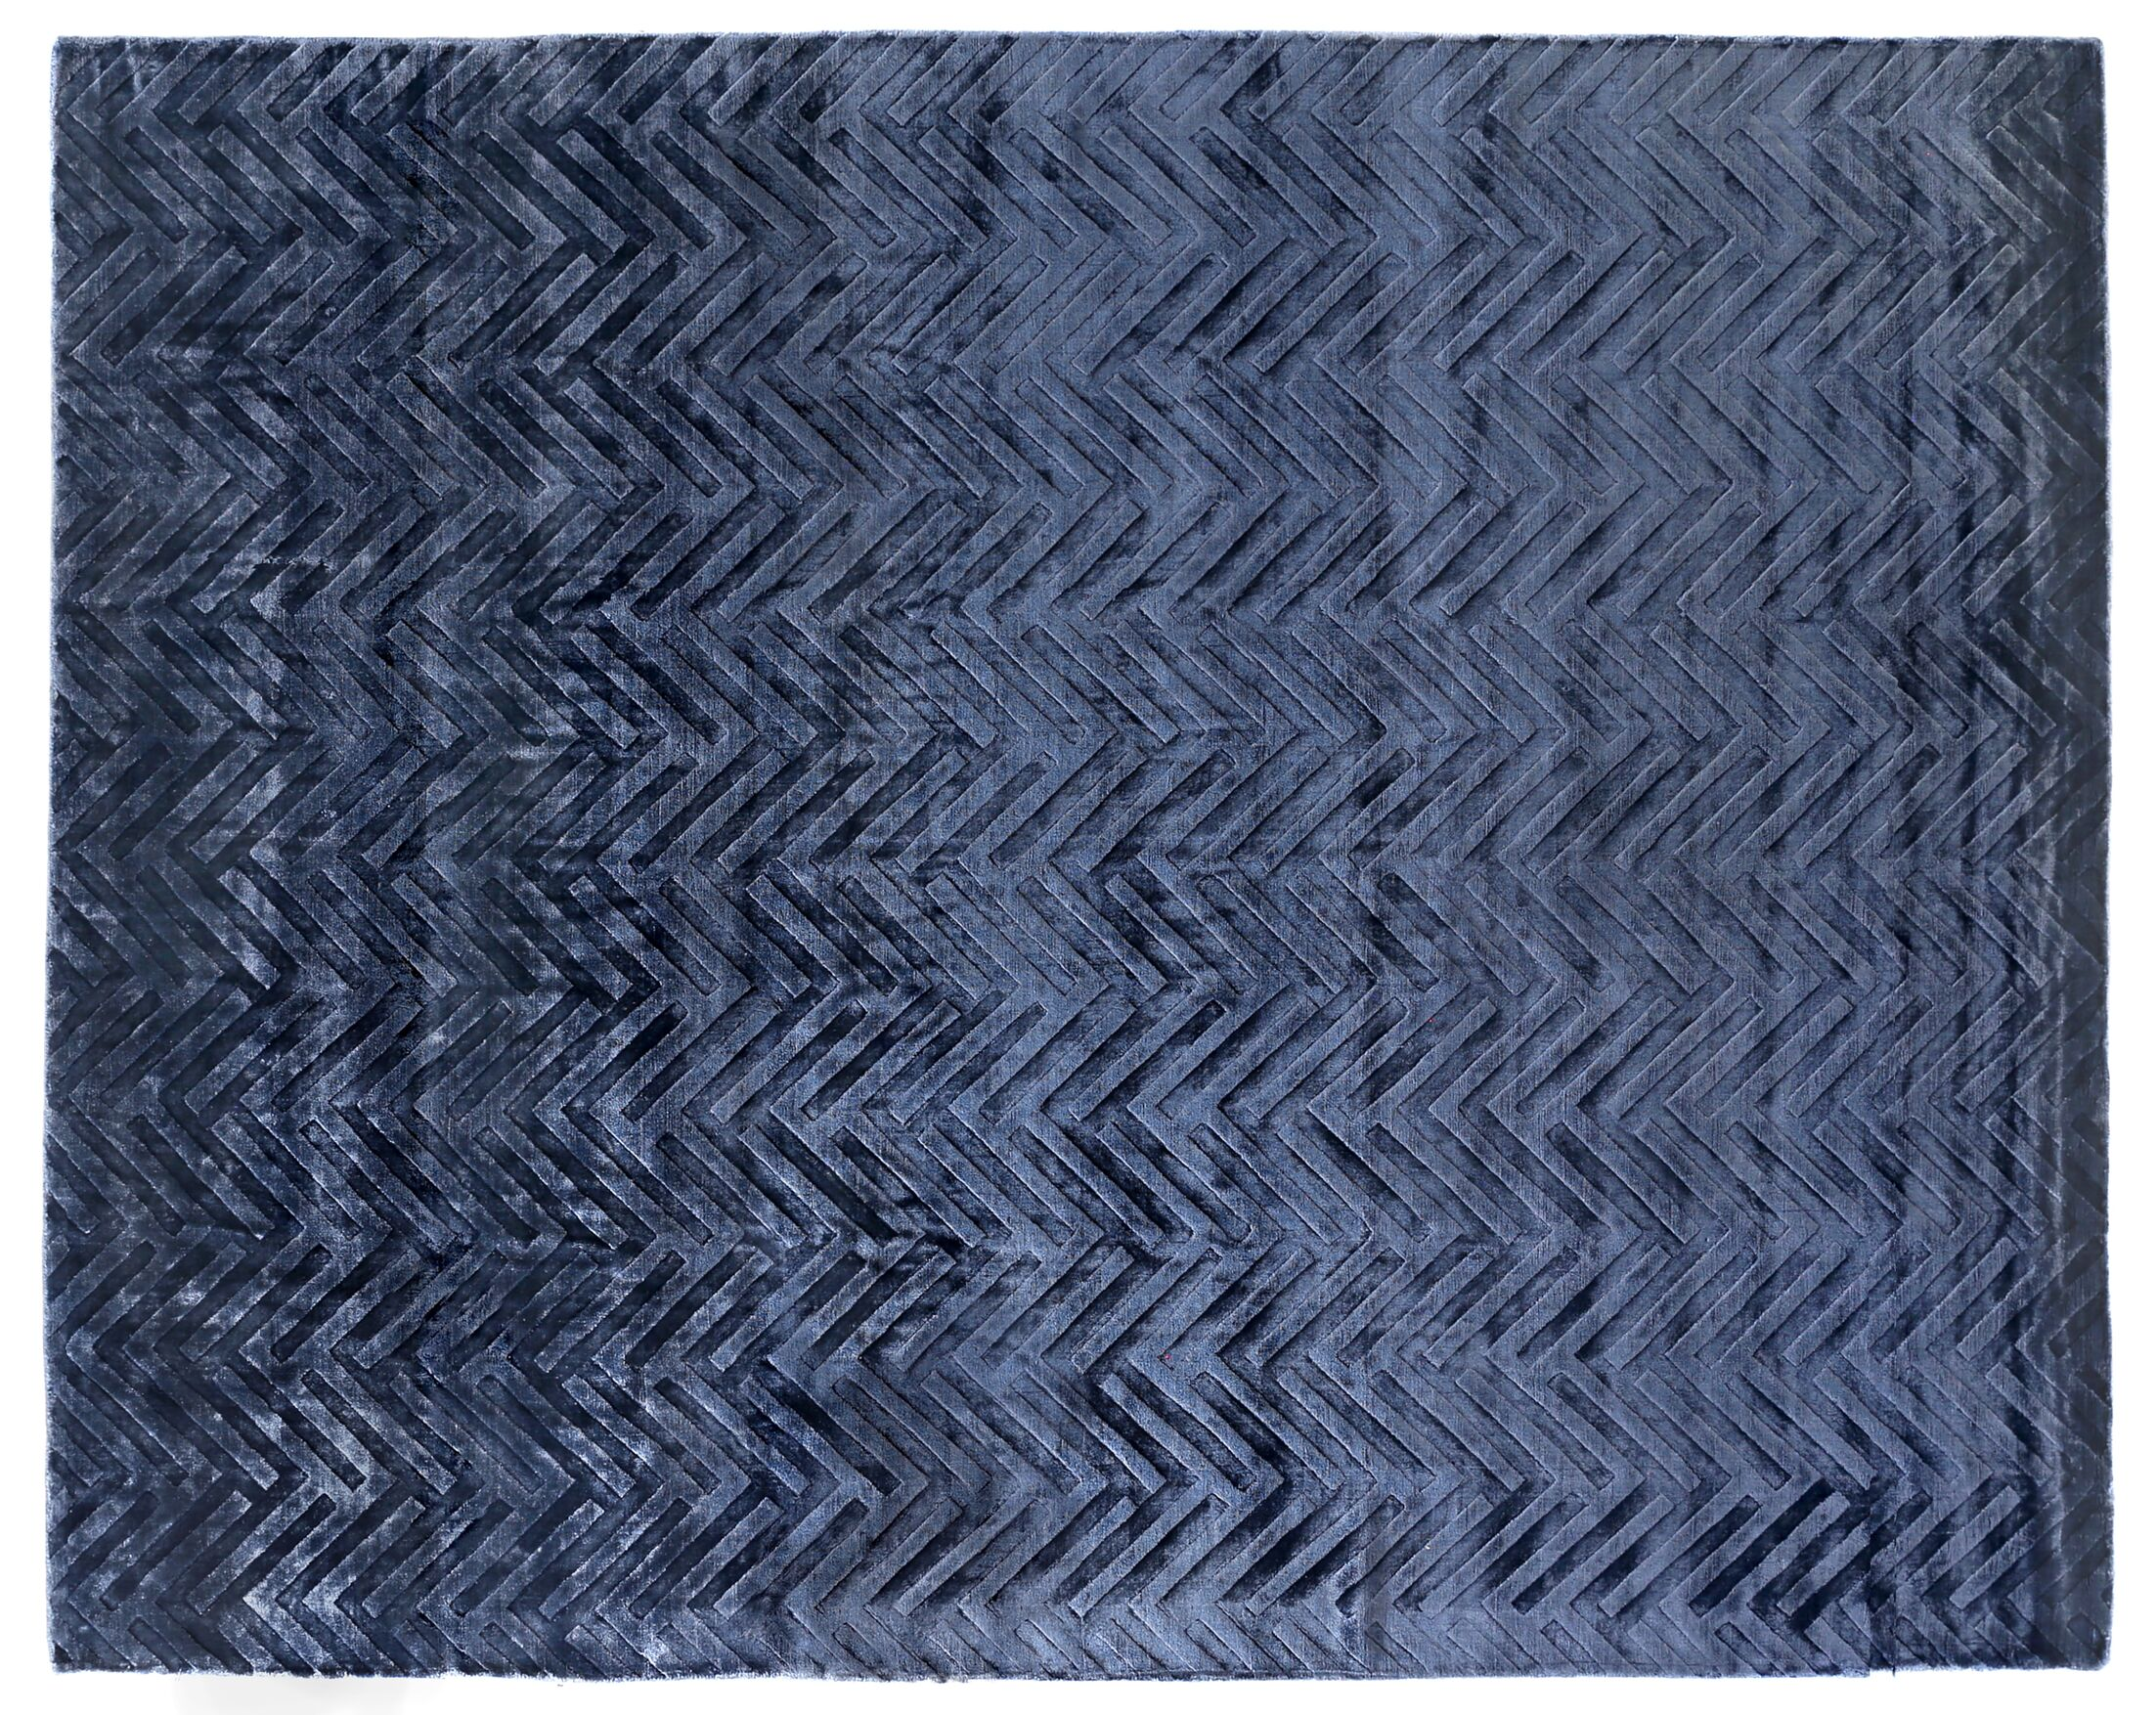 Smooch Carved Hand-Woven Blue Area Rug Rug Size: Rectangle 14' x 18'